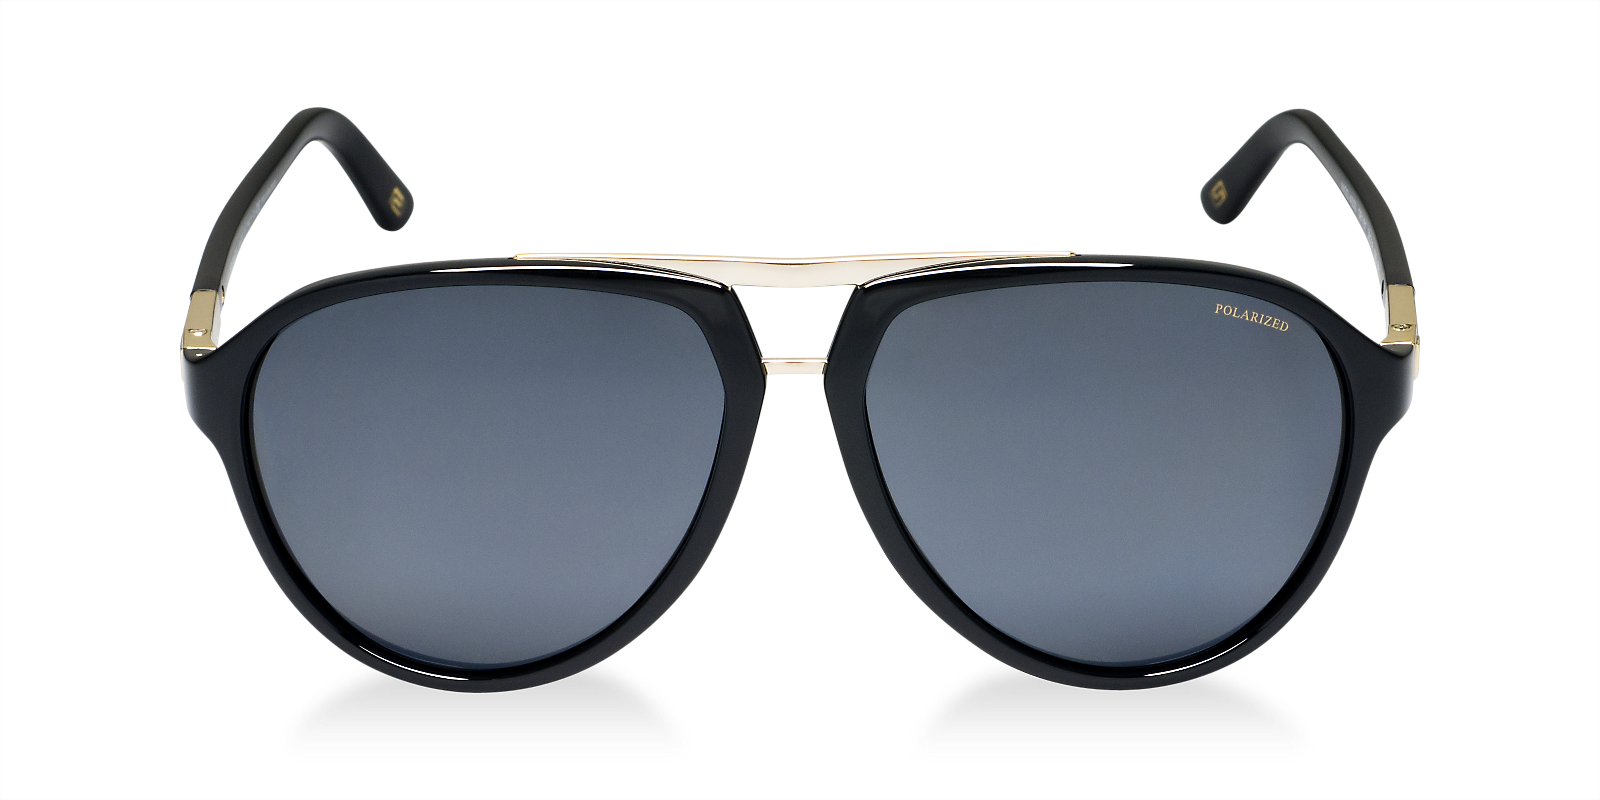 Cool Sunglass PNG Image - Sunglasses PNG